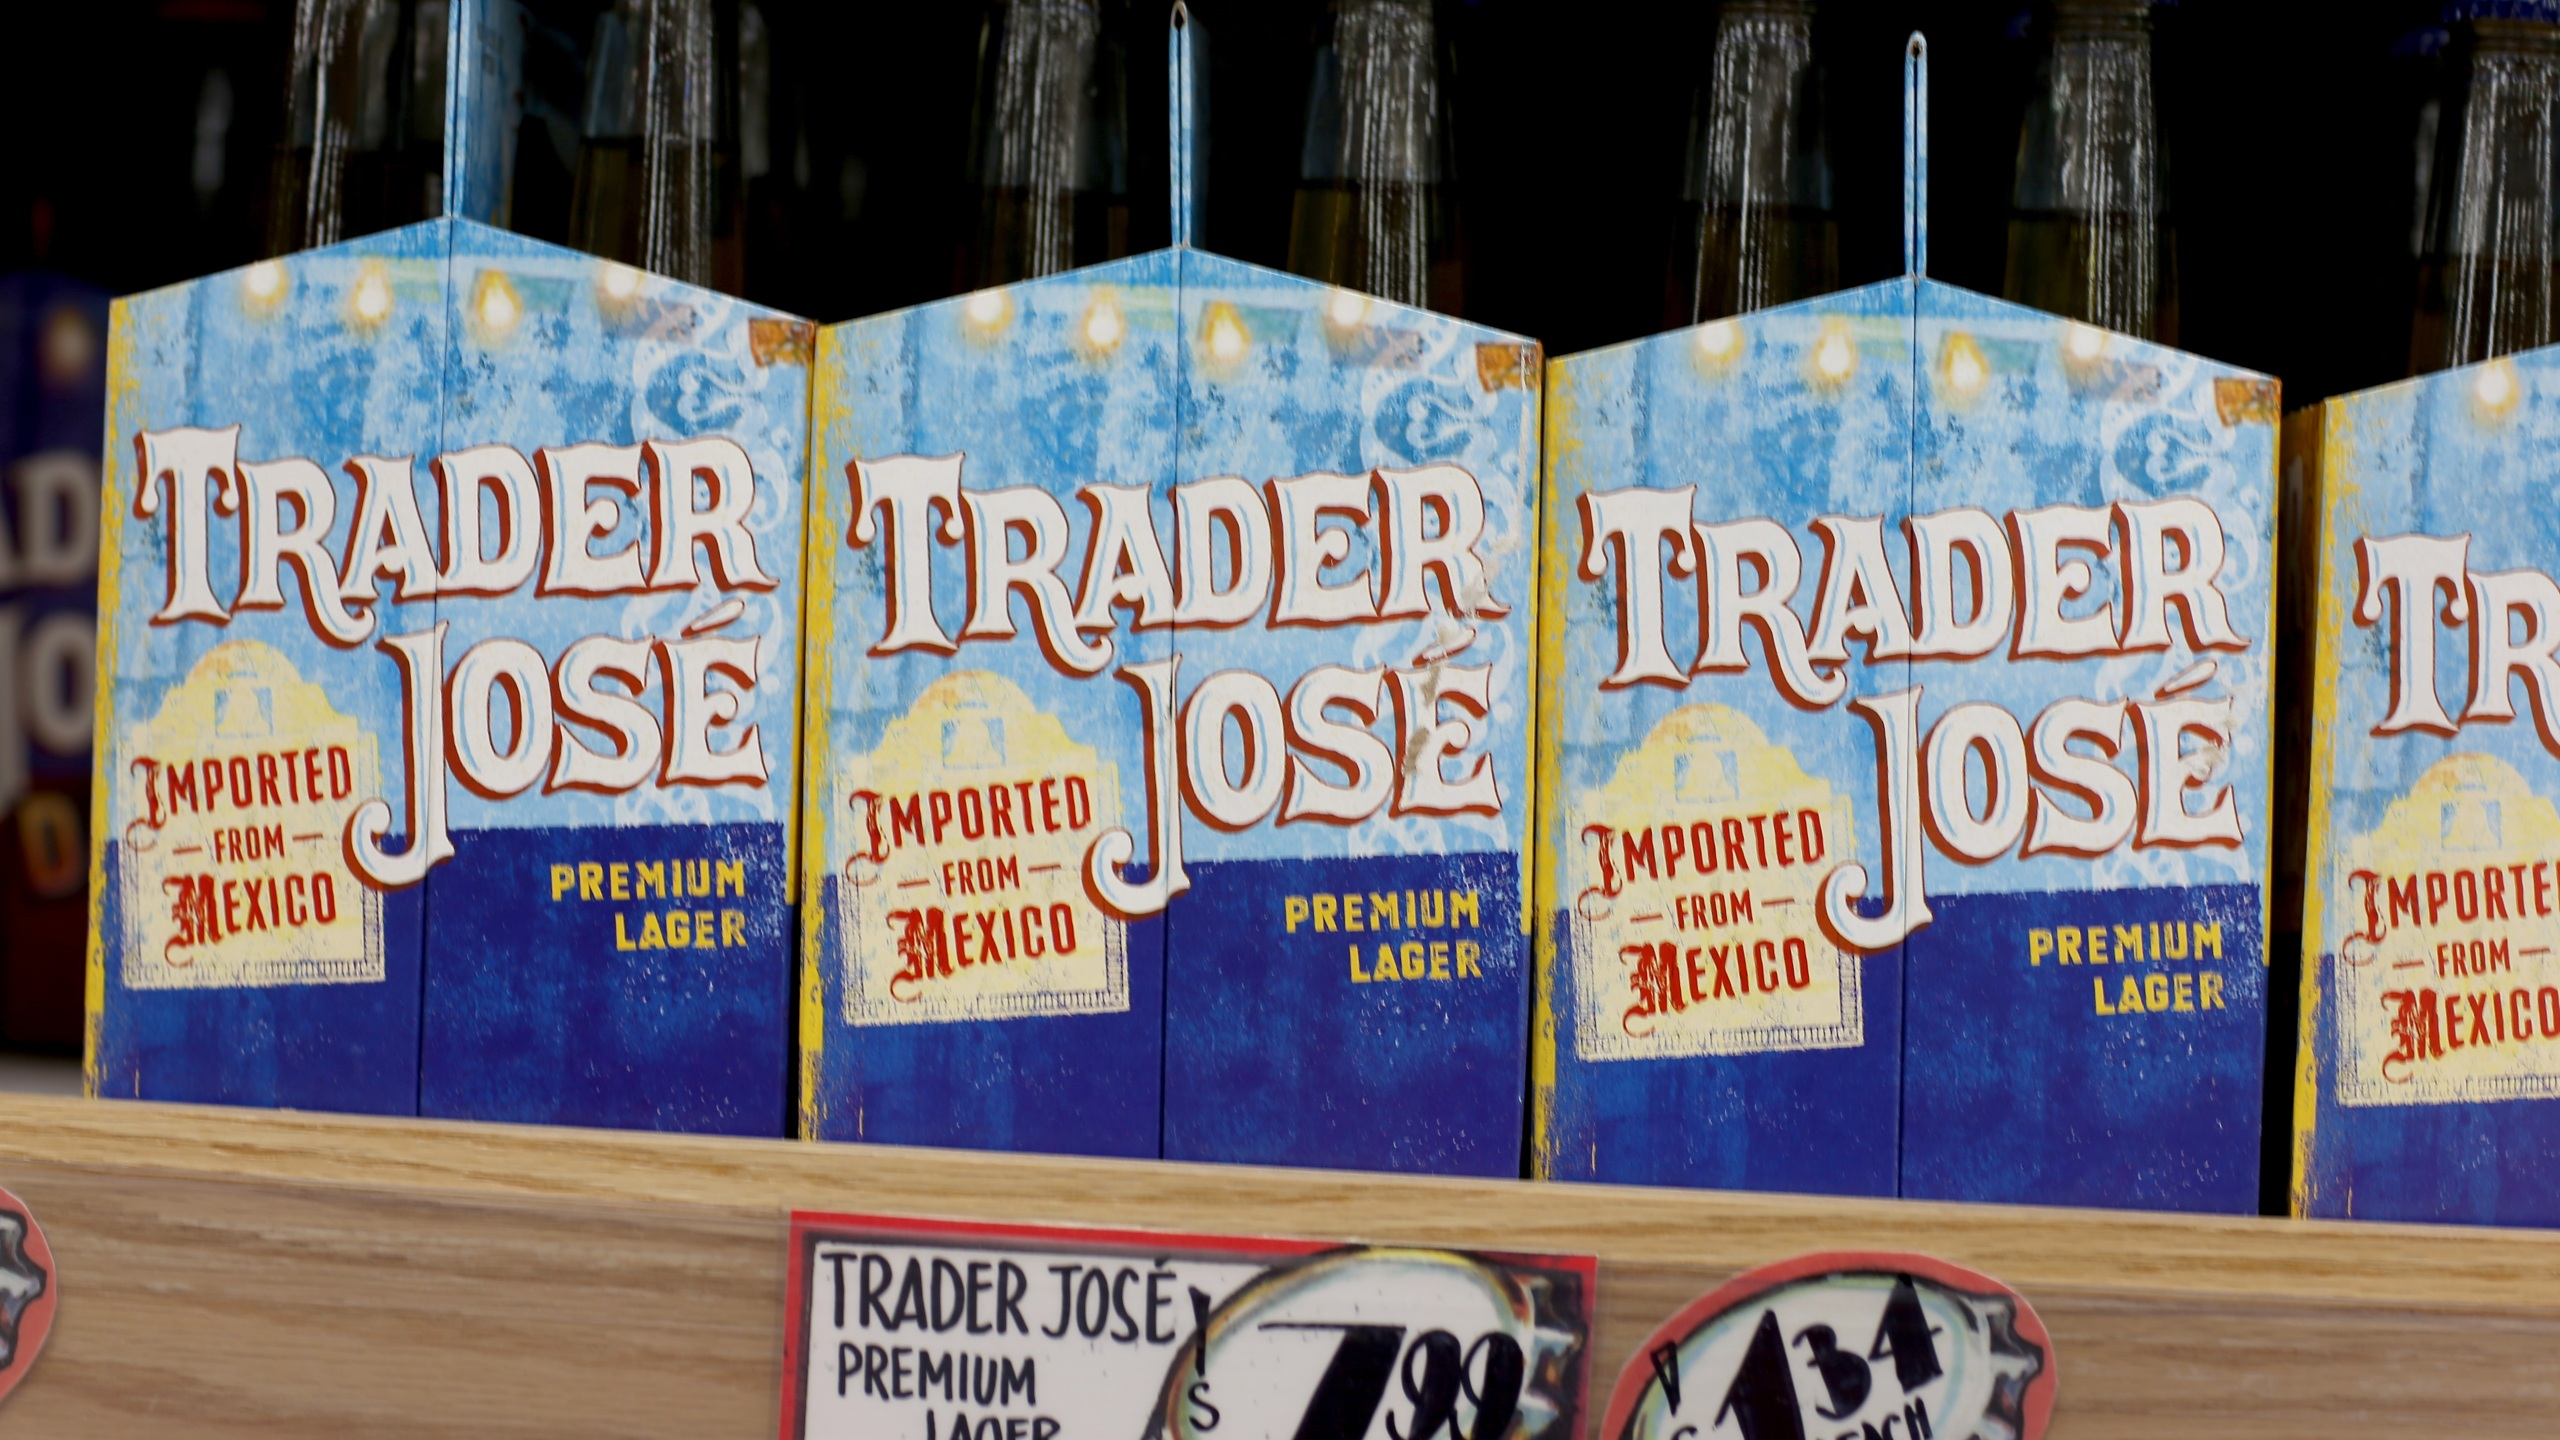 Trader Joe's beer, labeled Trader Jose's as a beer imported from Mexico, is seen on the shelf during the grand opening of a Trader Joe's store on Oct. 18, 2013, in Pinecrest, Fla. (Joe Raedle/ Getty Images)